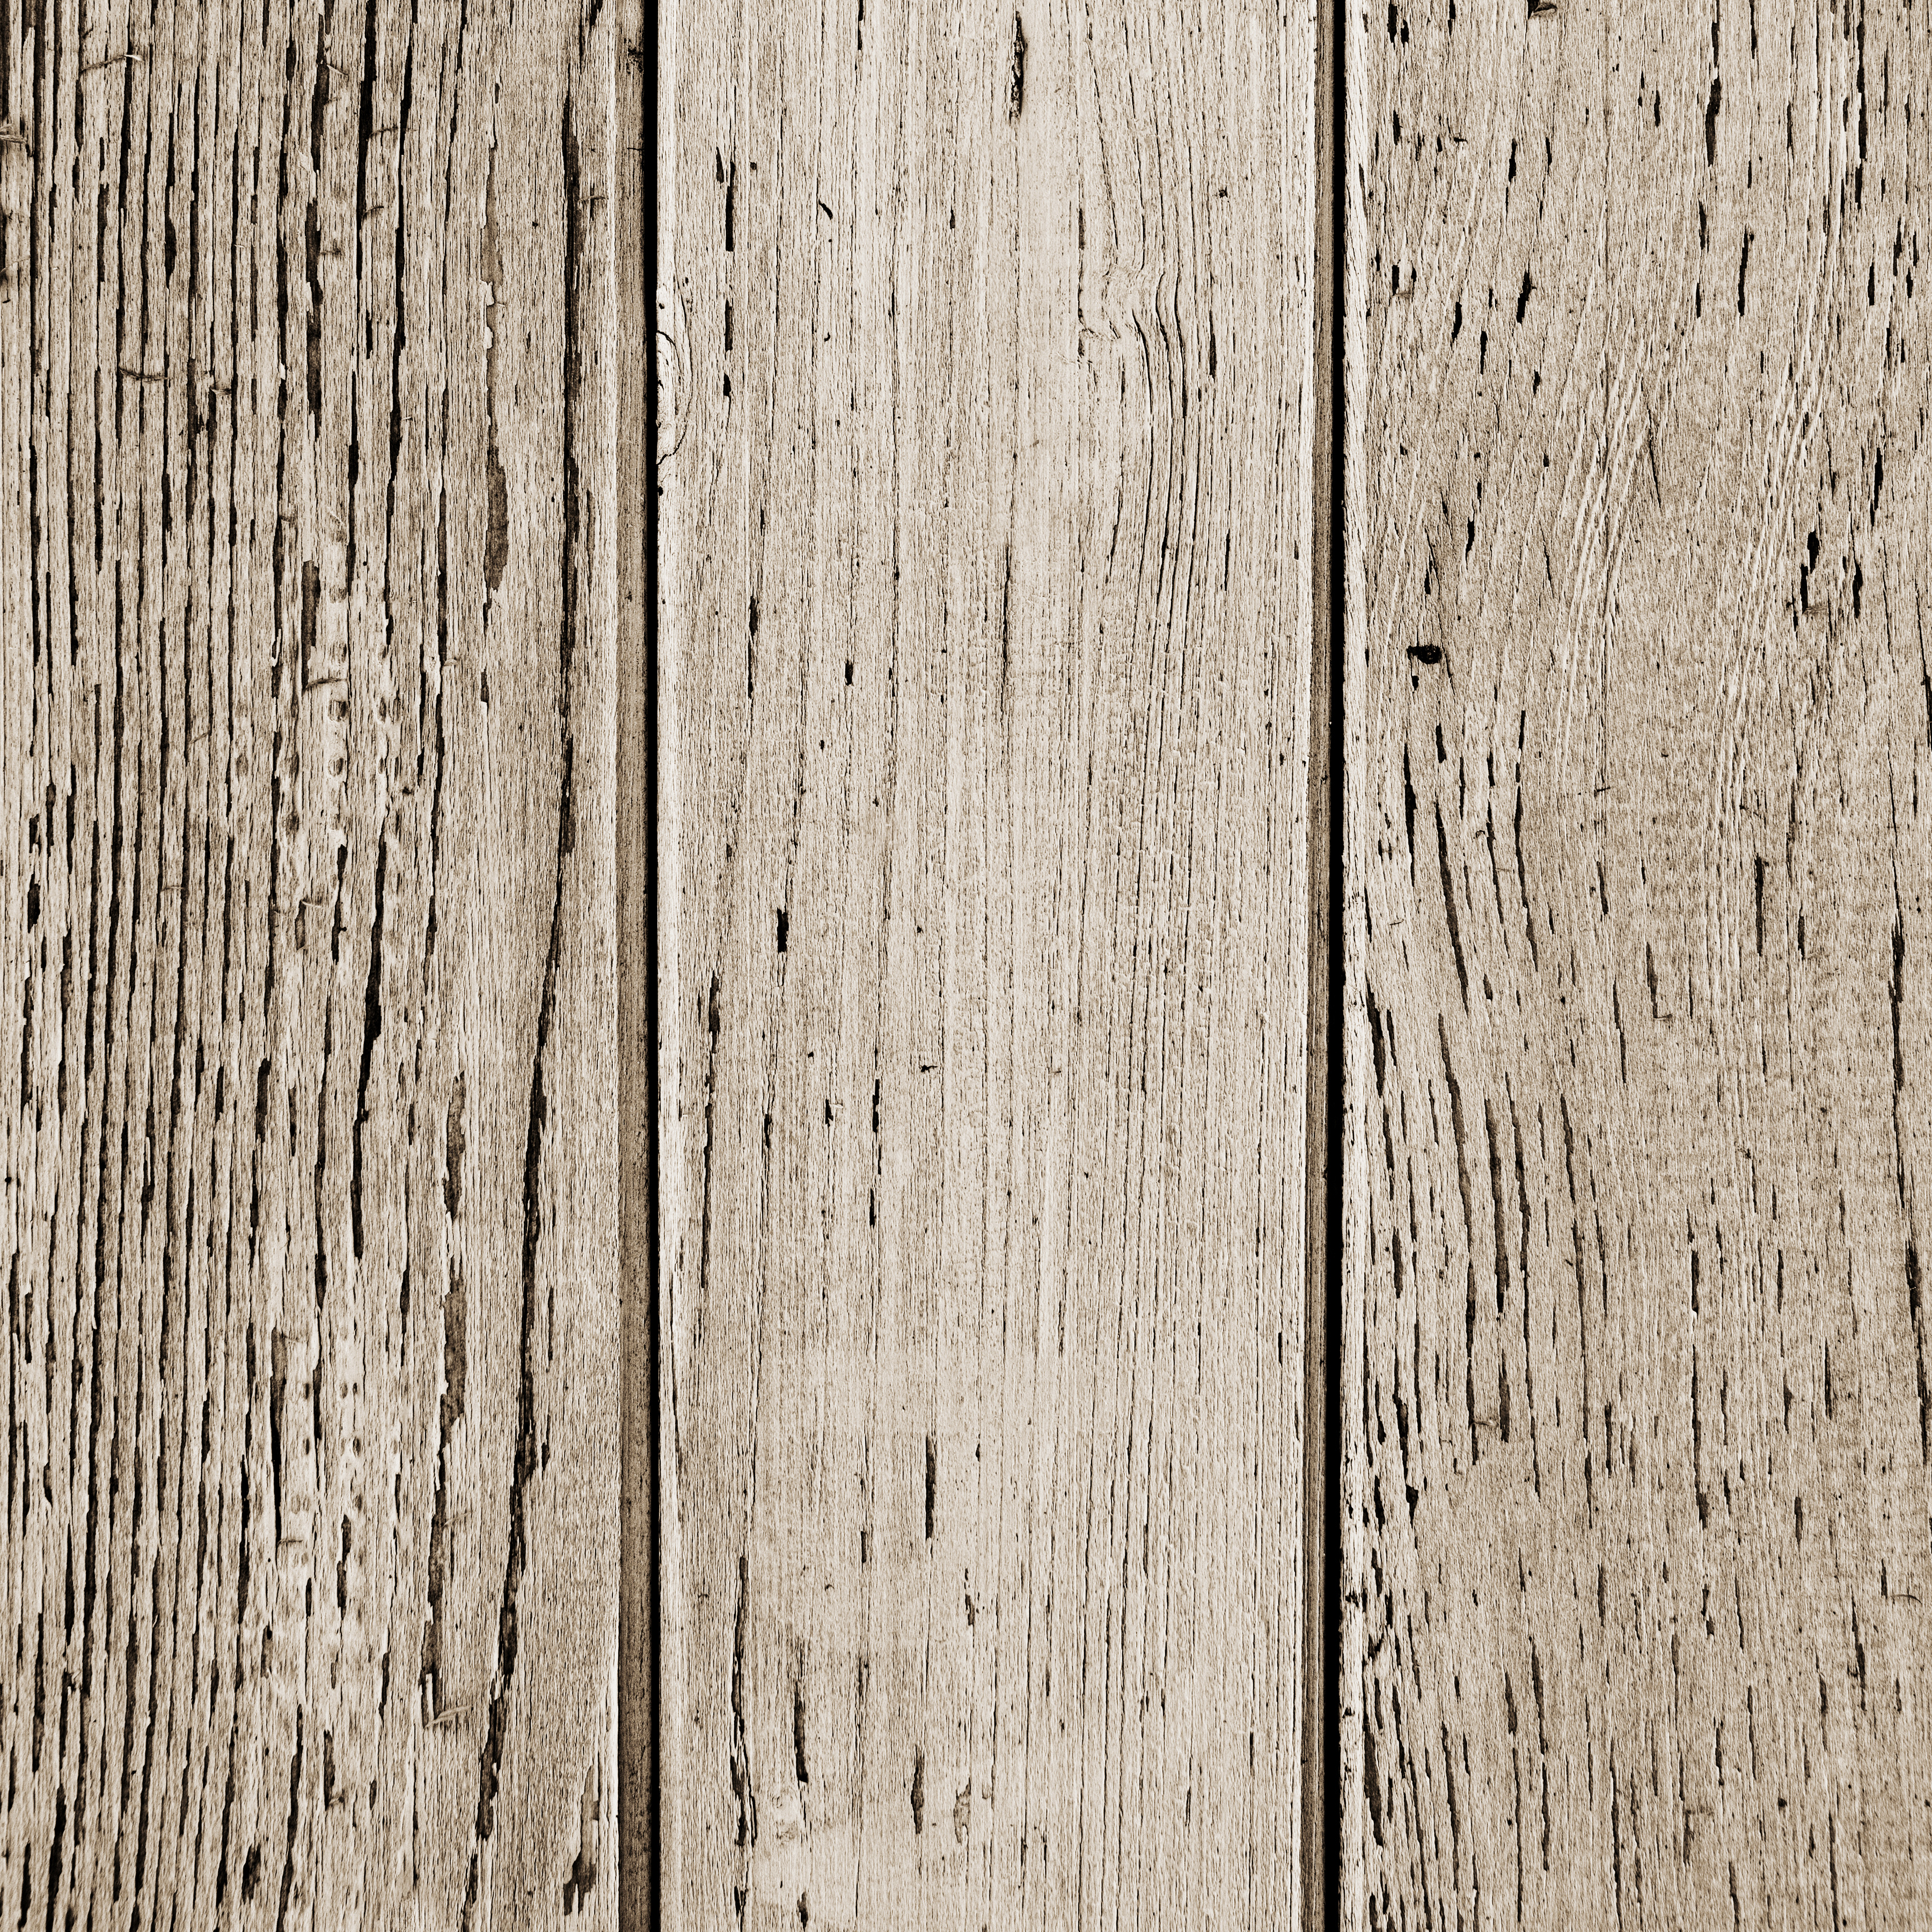 Texture of wood background closeup photo